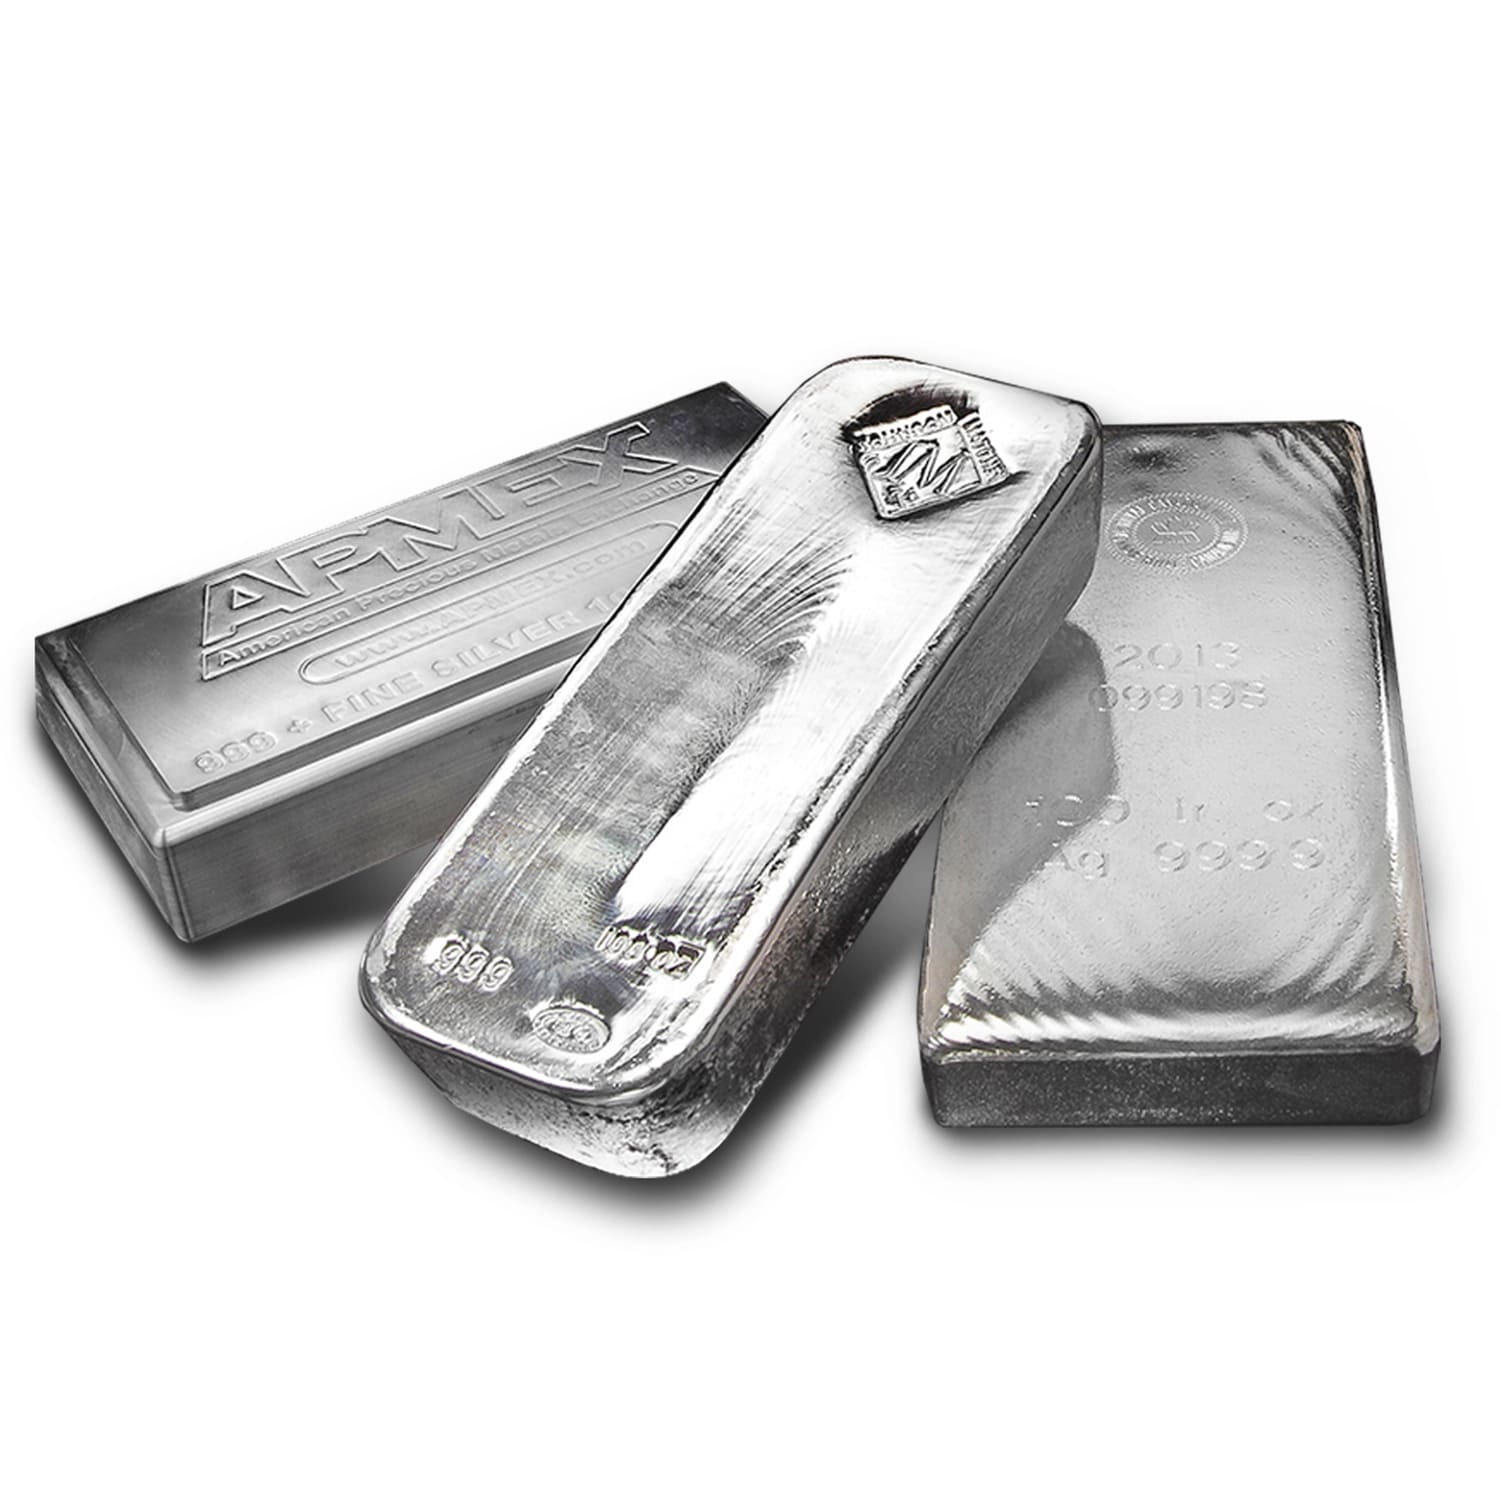 100.44 oz Silver Bars - Secondary Market